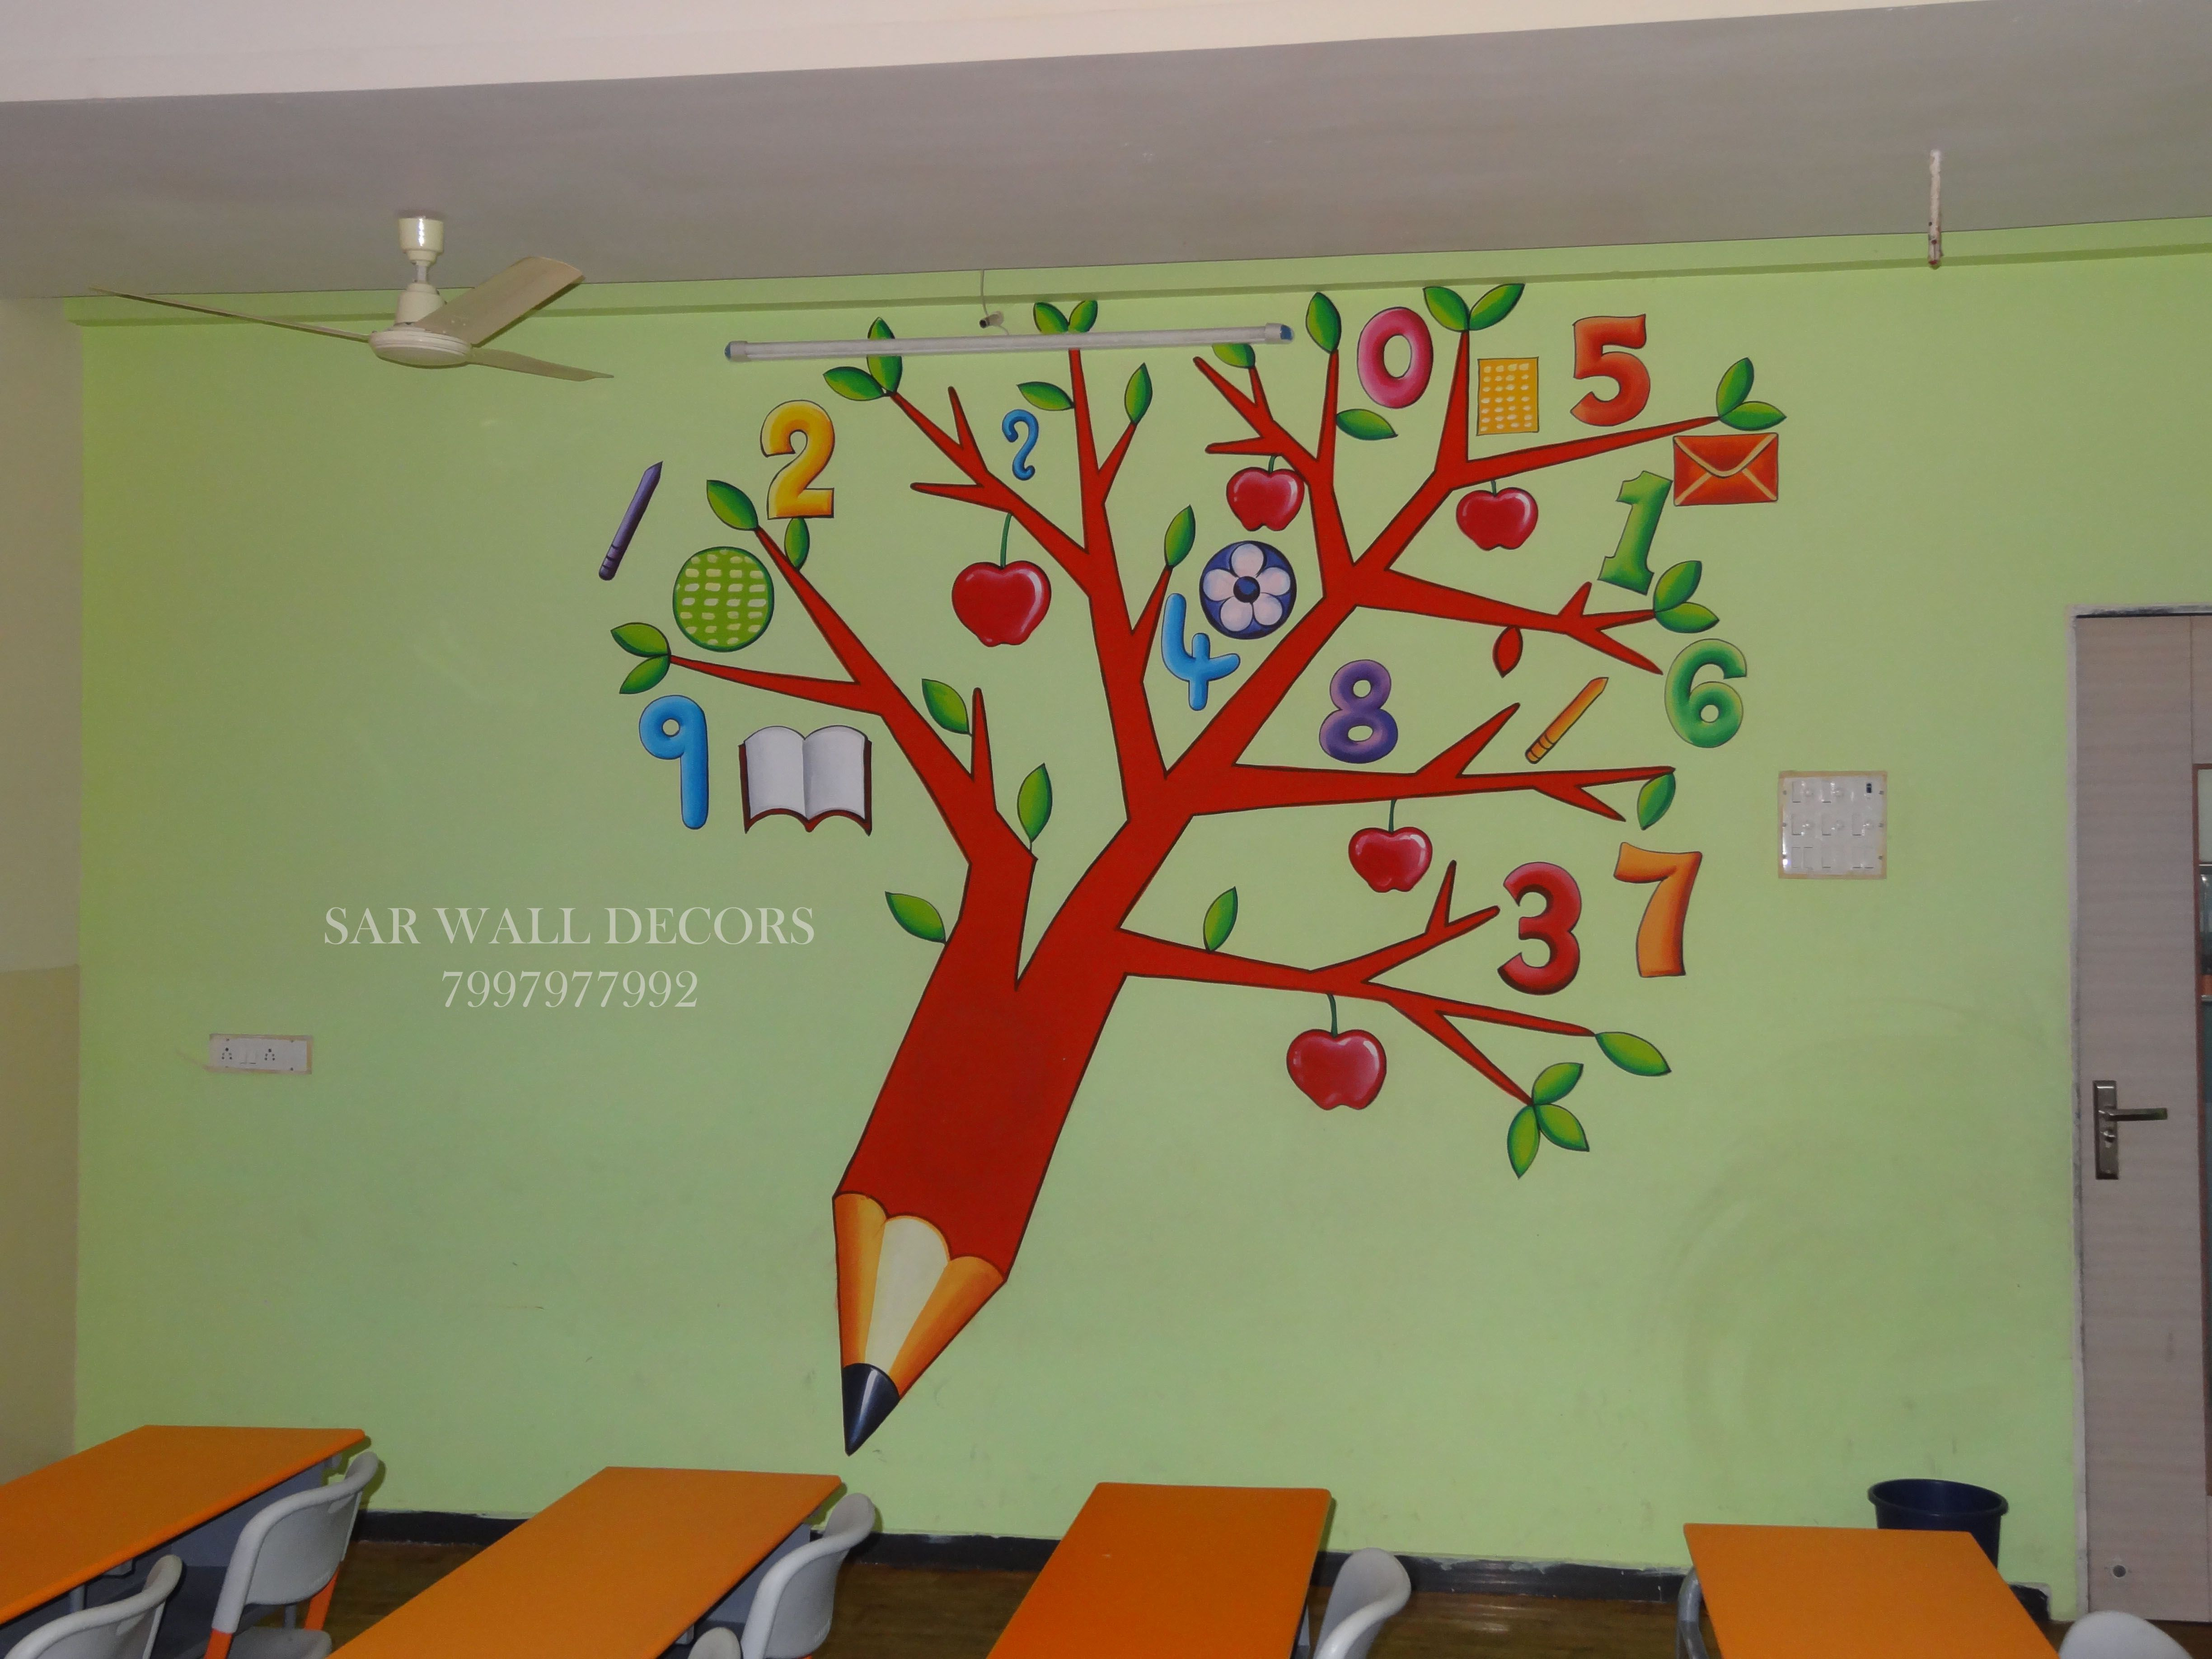 Sar Wall Decors Is A Professionally Managed Company Which Has Been